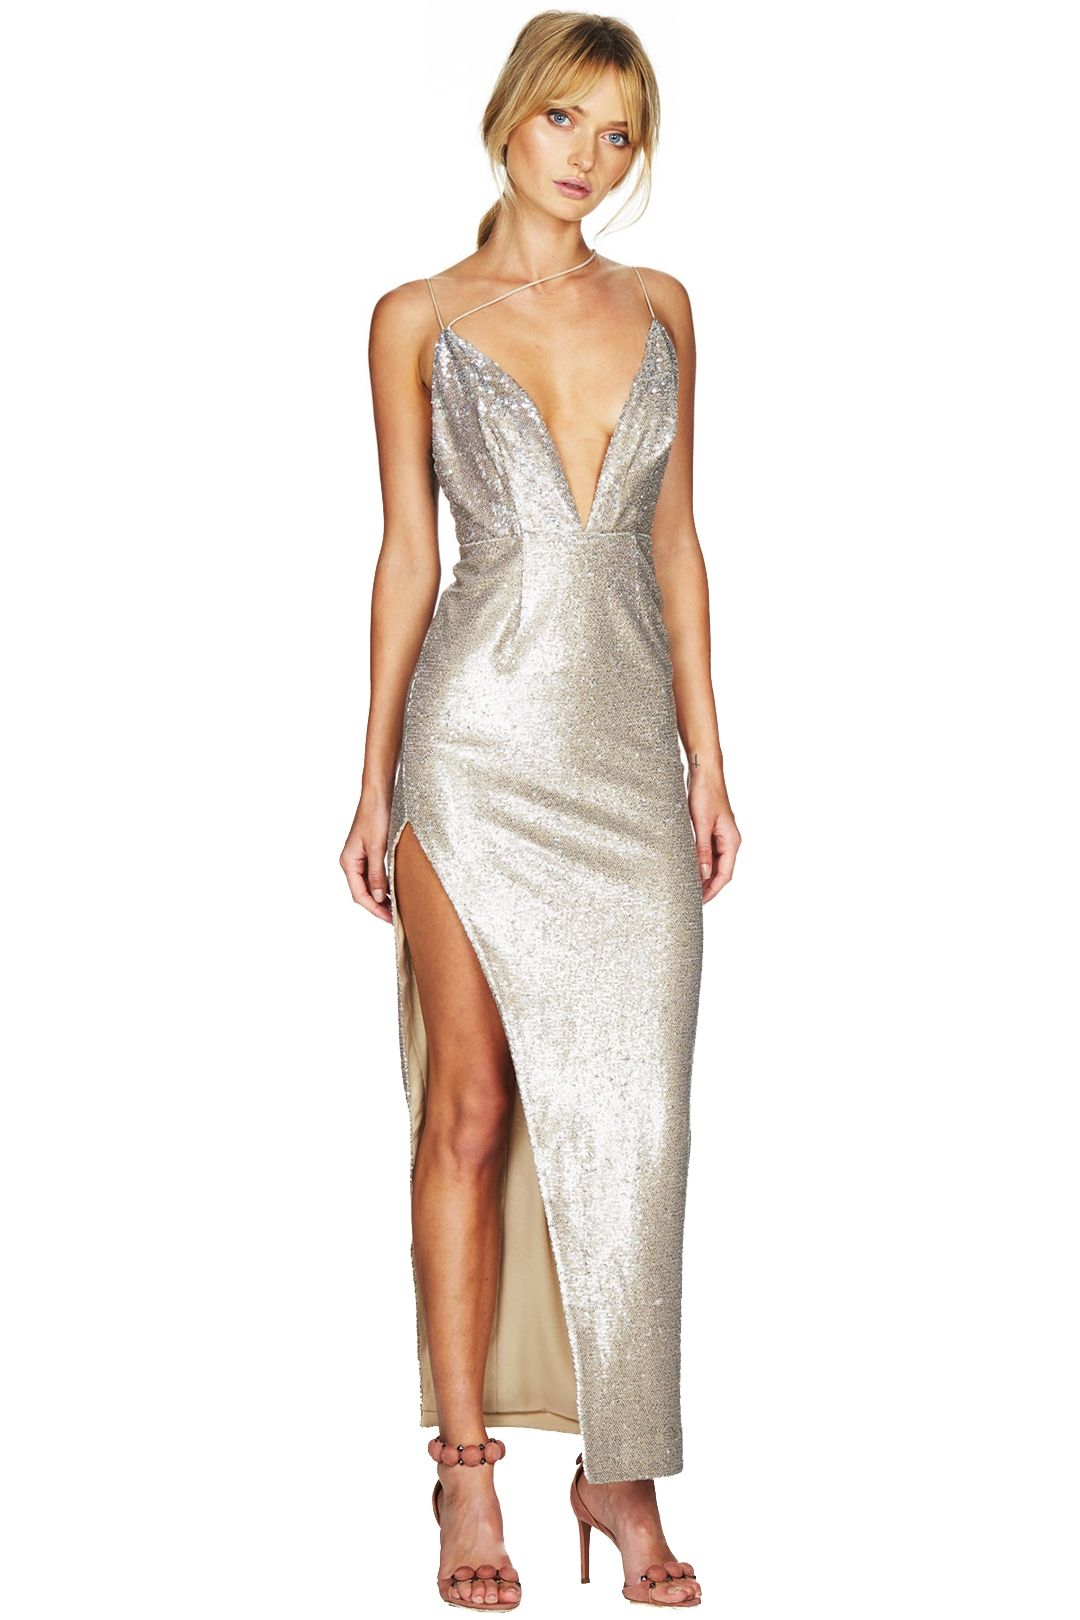 Talulah - Goldie Maxi Dress - Silver - Front